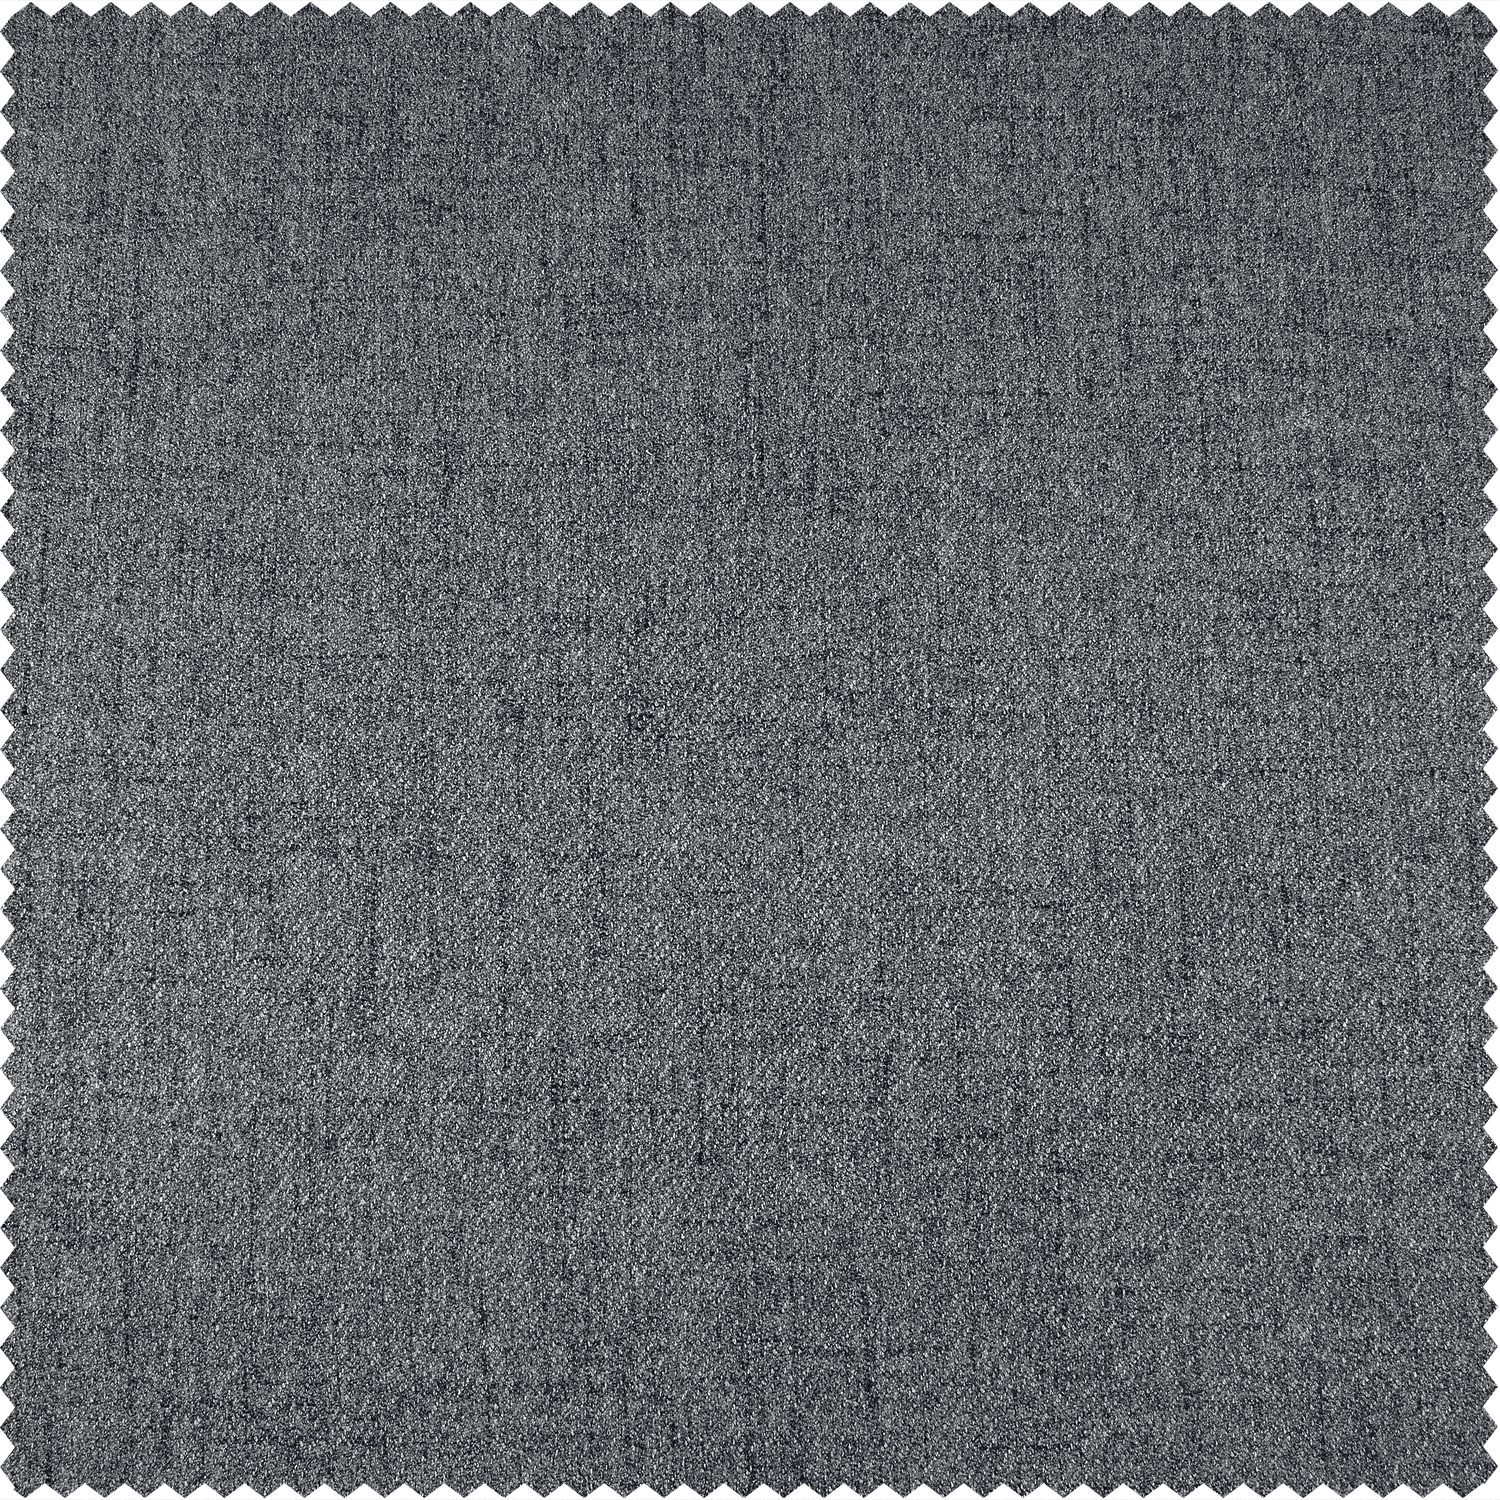 Modern Grey Thermal Room Darkening Heathered Italian Woolen Weave Grommet Curtain